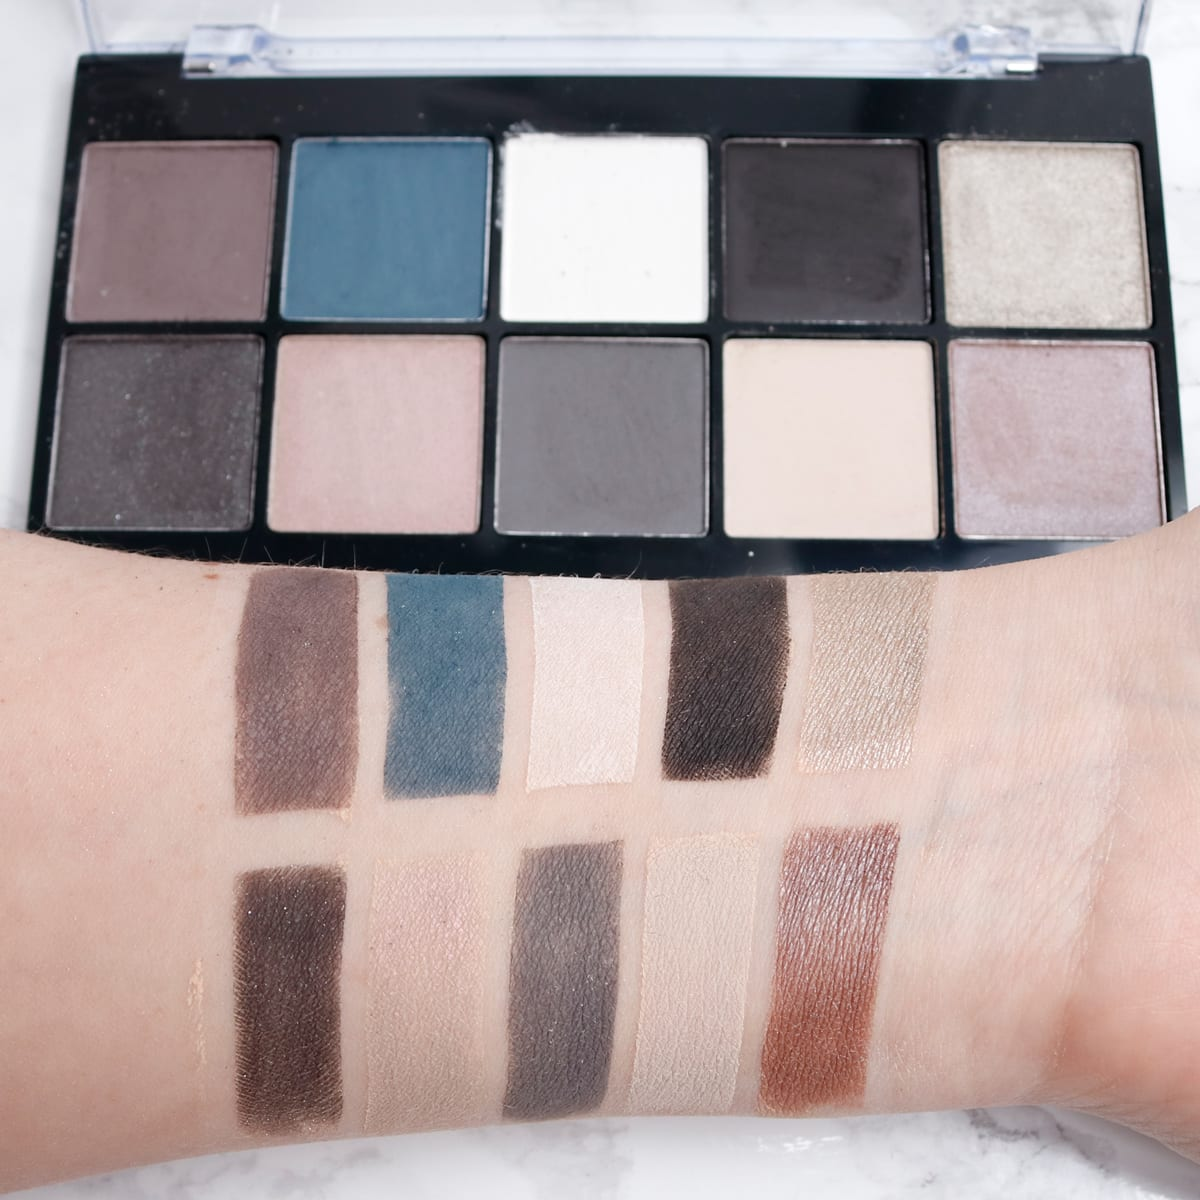 nyx gloomy days perfect filter shadow palette swatched on. Black Bedroom Furniture Sets. Home Design Ideas